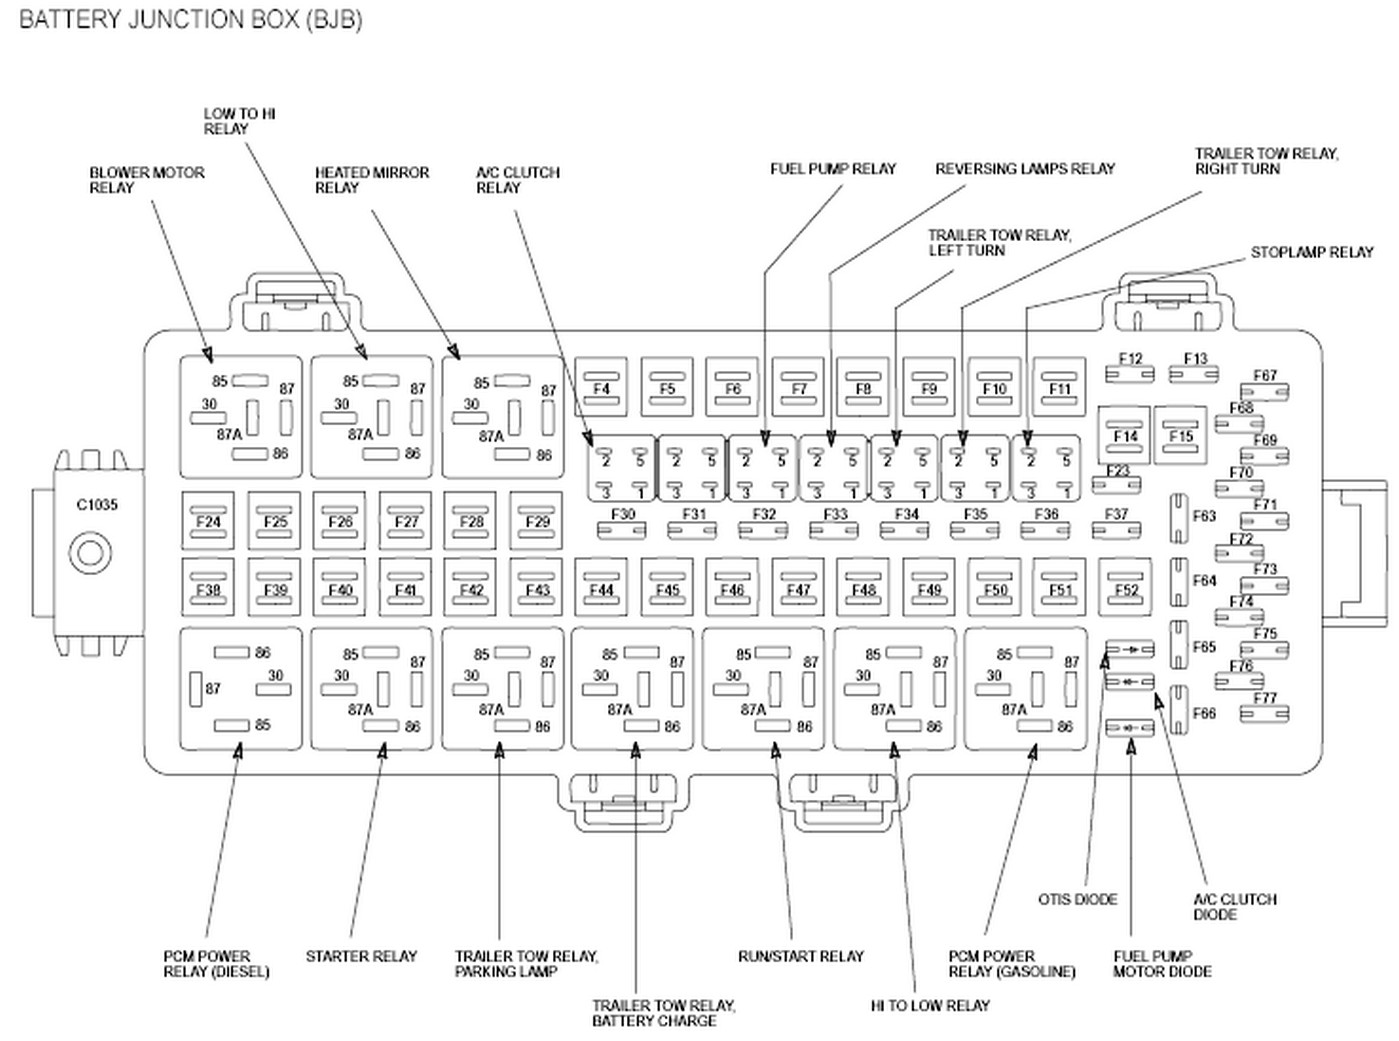 2011 ford f250 fuse box diagram Zoinyhu 2012 f250 fuse box location 2009 ford fusion fuse box diagram 2012 ford edge fuse box diagram at gsmx.co